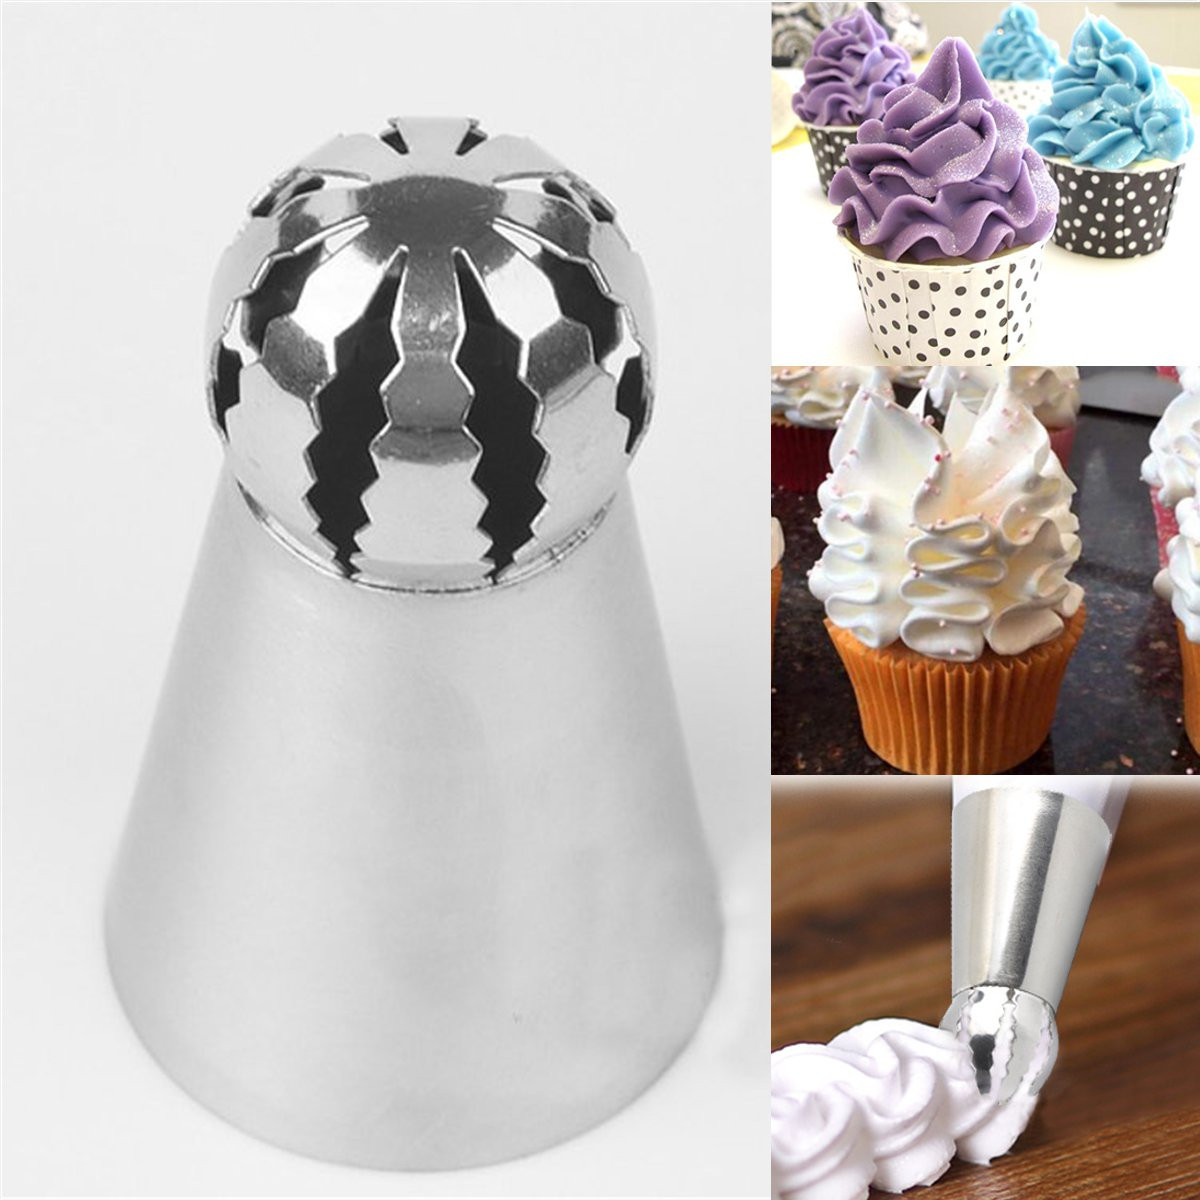 Sphere Ball Icing Piping Nozzle Tips Pastry Cup Cake Decorating SugarCraftools